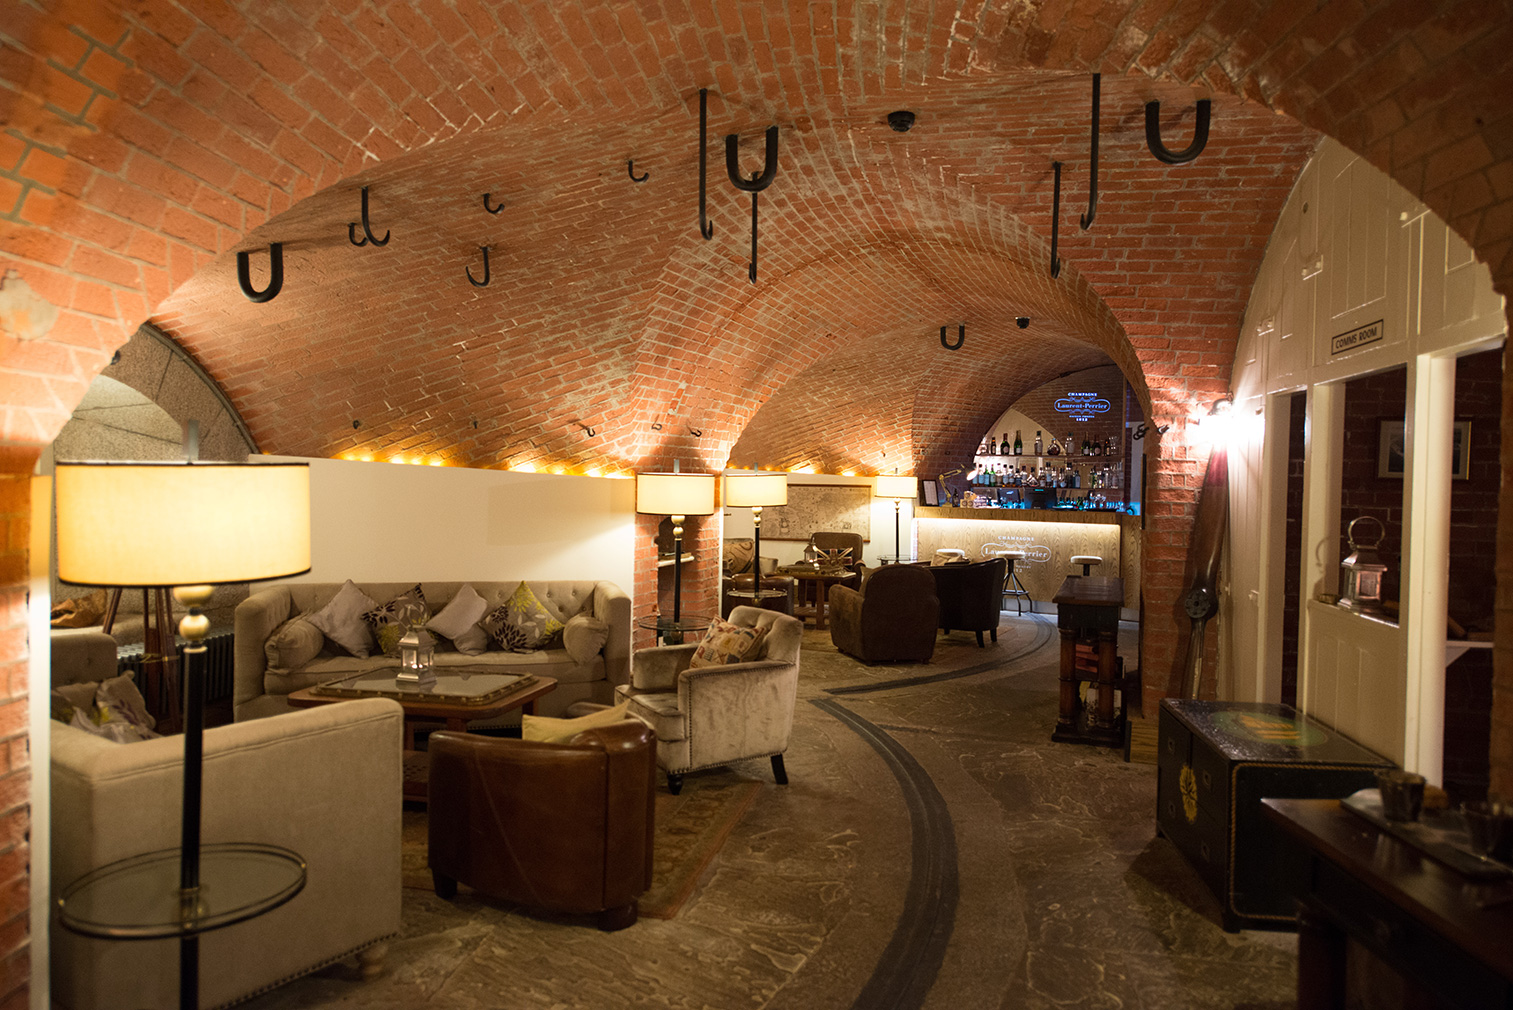 Inside Spitbank Fort, which currently operates as a remote hotel in the middle of the English Channel